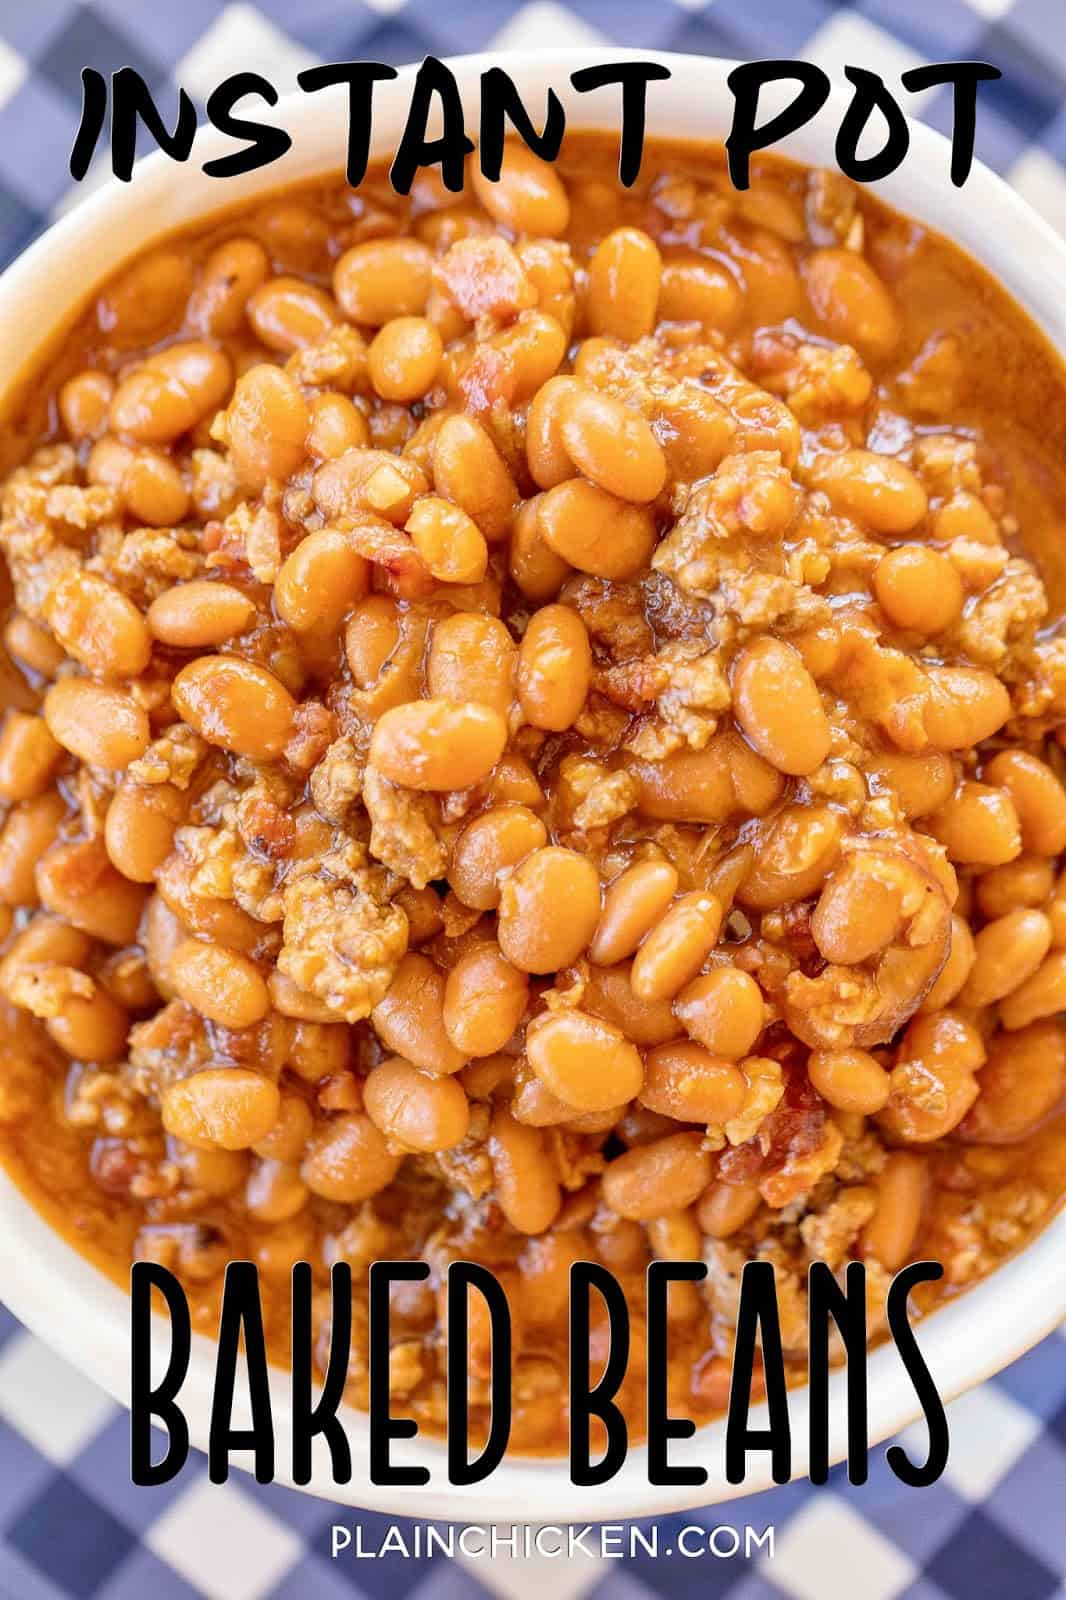 baked beans with ground beef and bacon in a bowl